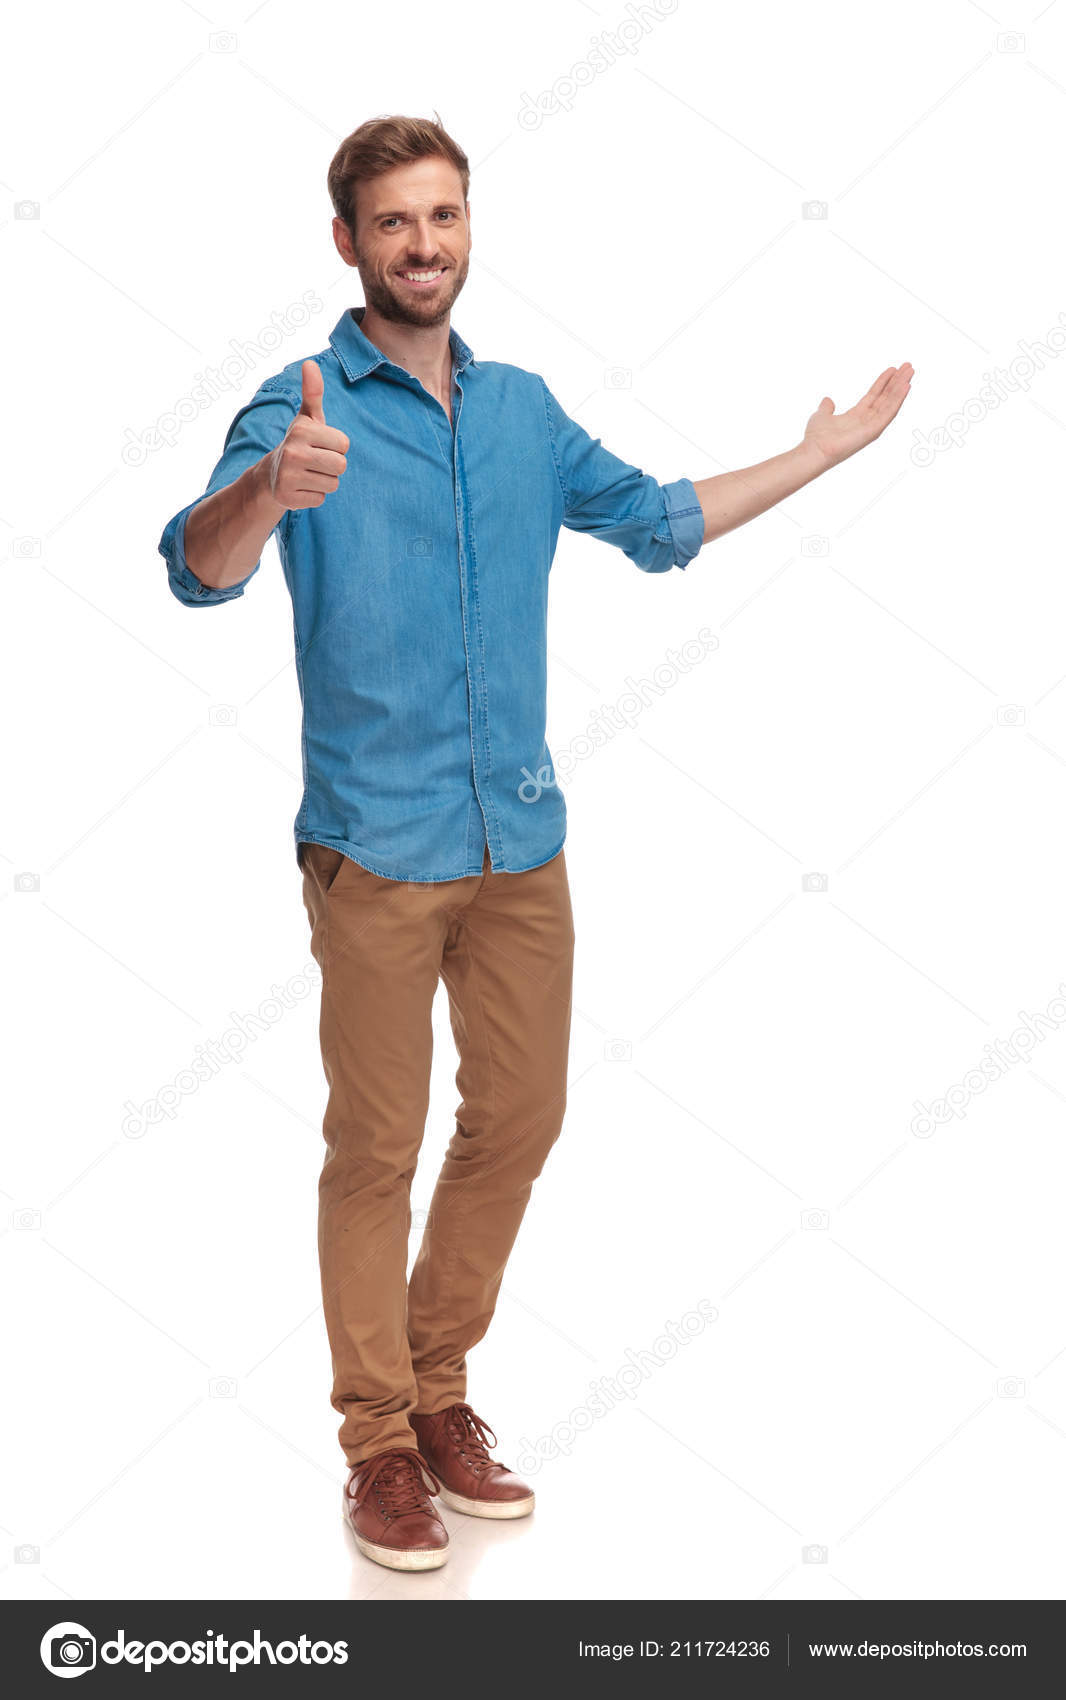 649789539c1 Full Body Picture Casual Man Presenting Making Sign White Background — Stock  Photo